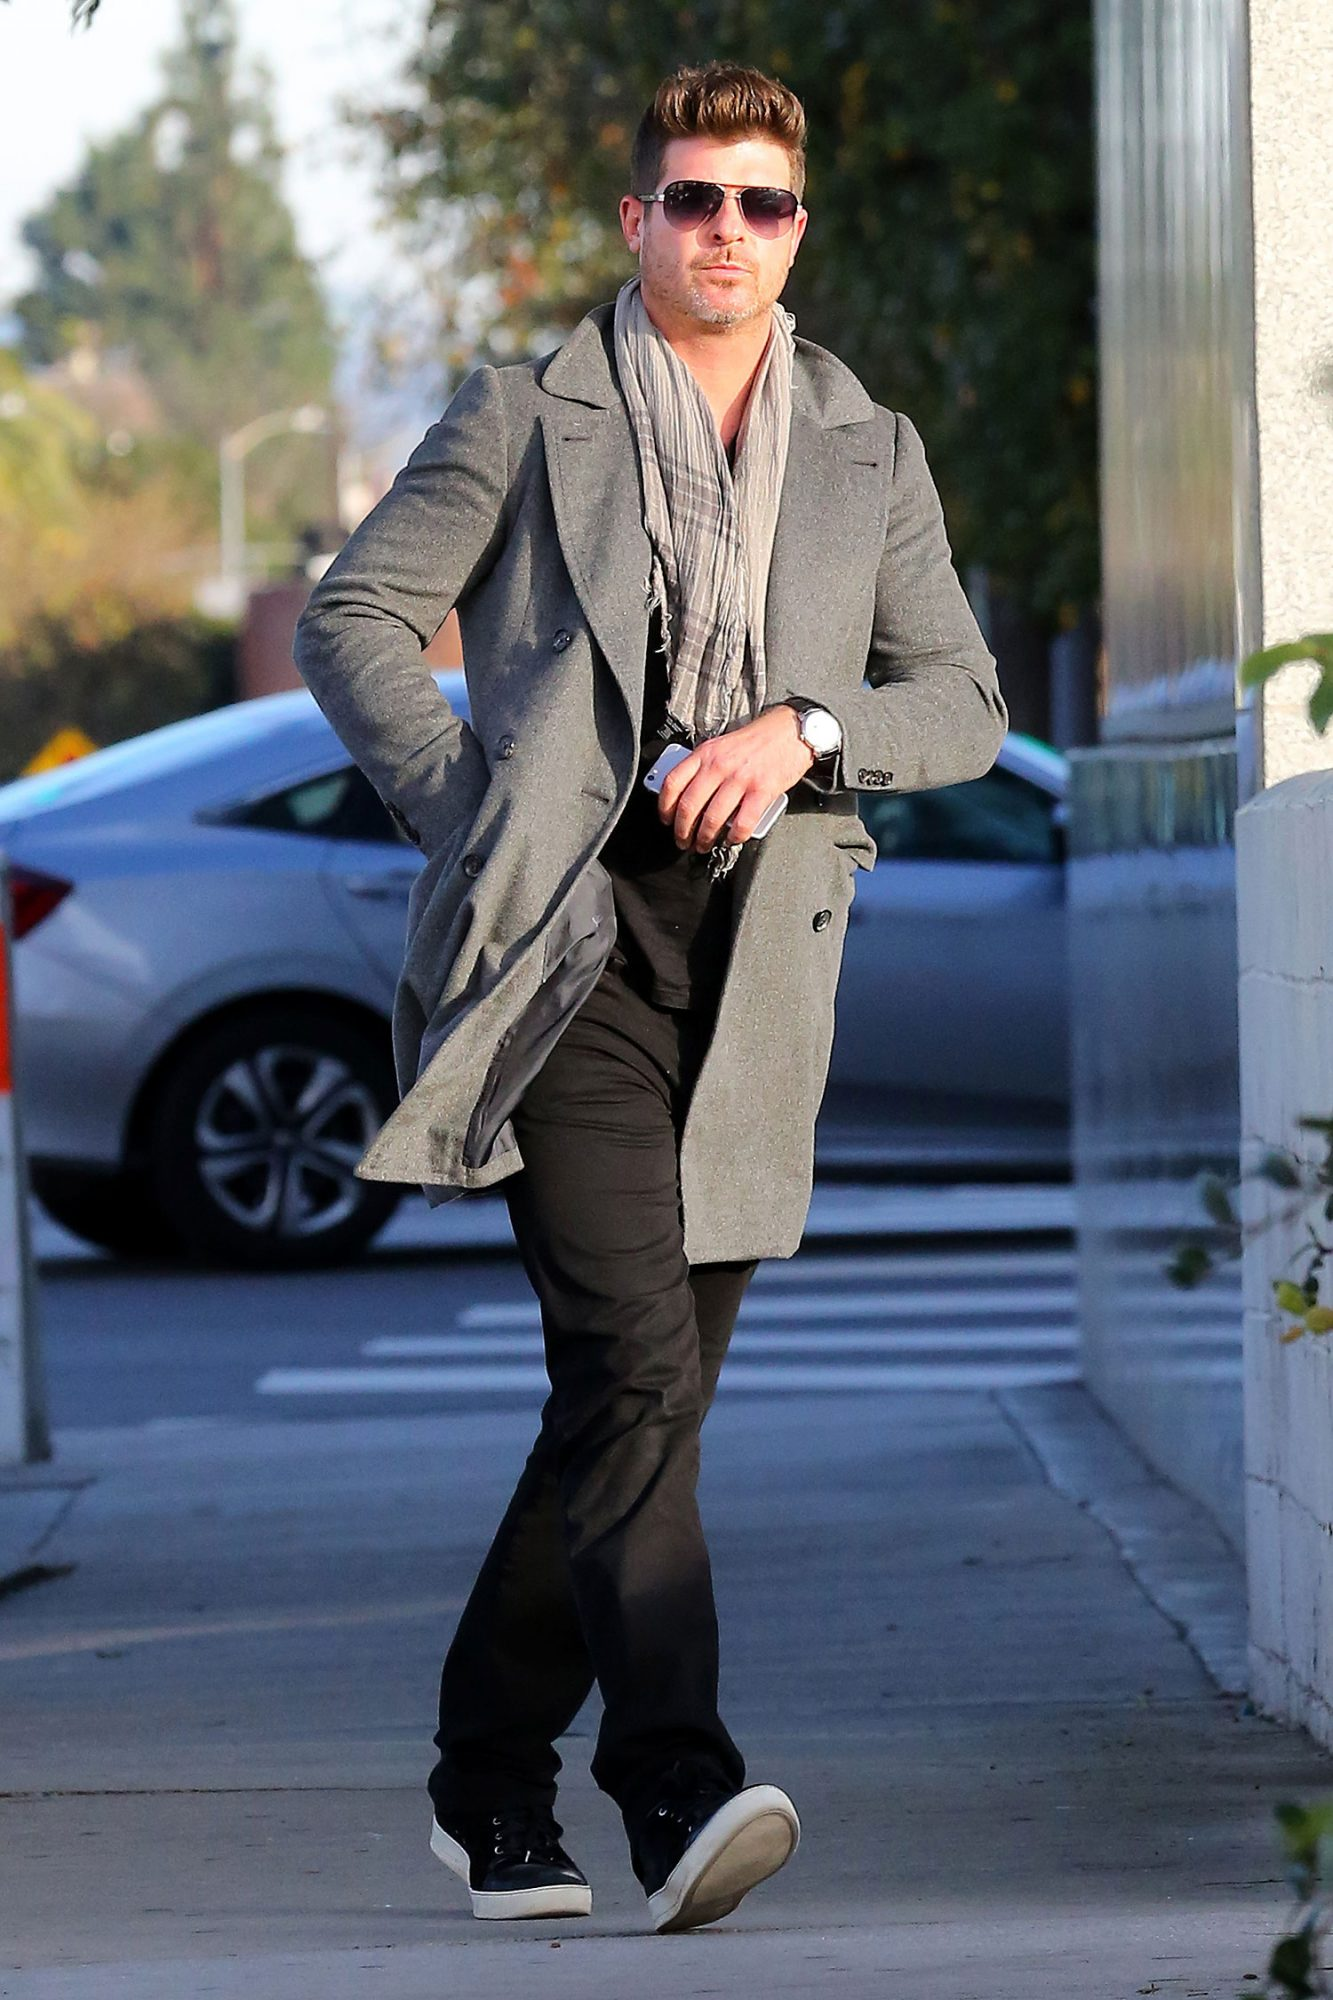 Paula Patton and Robin Thicke Leave the Same Building after a Meeting in LA